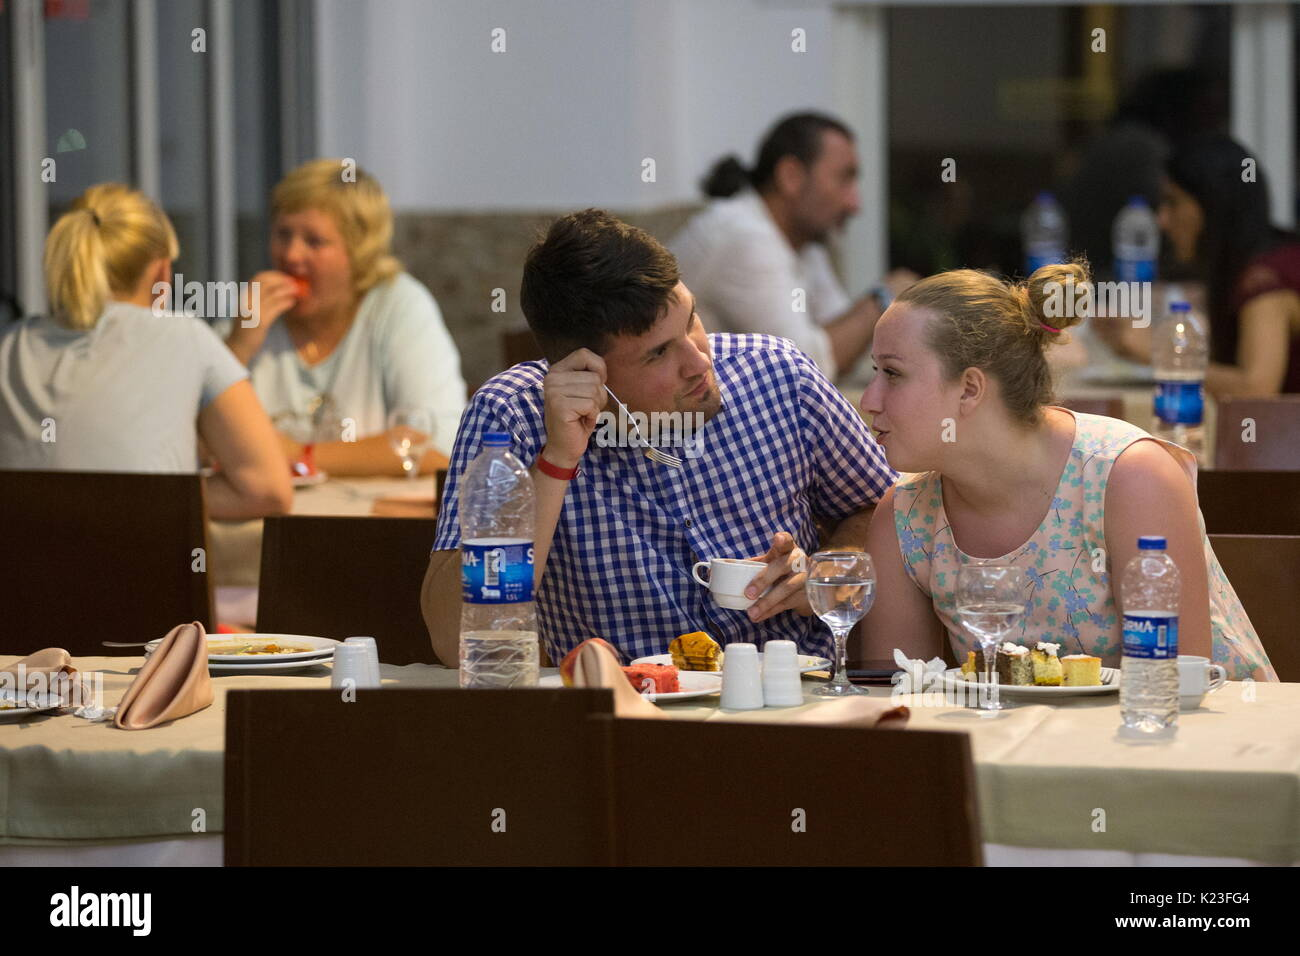 Kemer, Turkey. 22nd Aug, 2017. Tourists in a restaurant at the Meder Resort Hotel. Credit: Sergei Bobylev/TASS/Alamy Live News - Stock Image